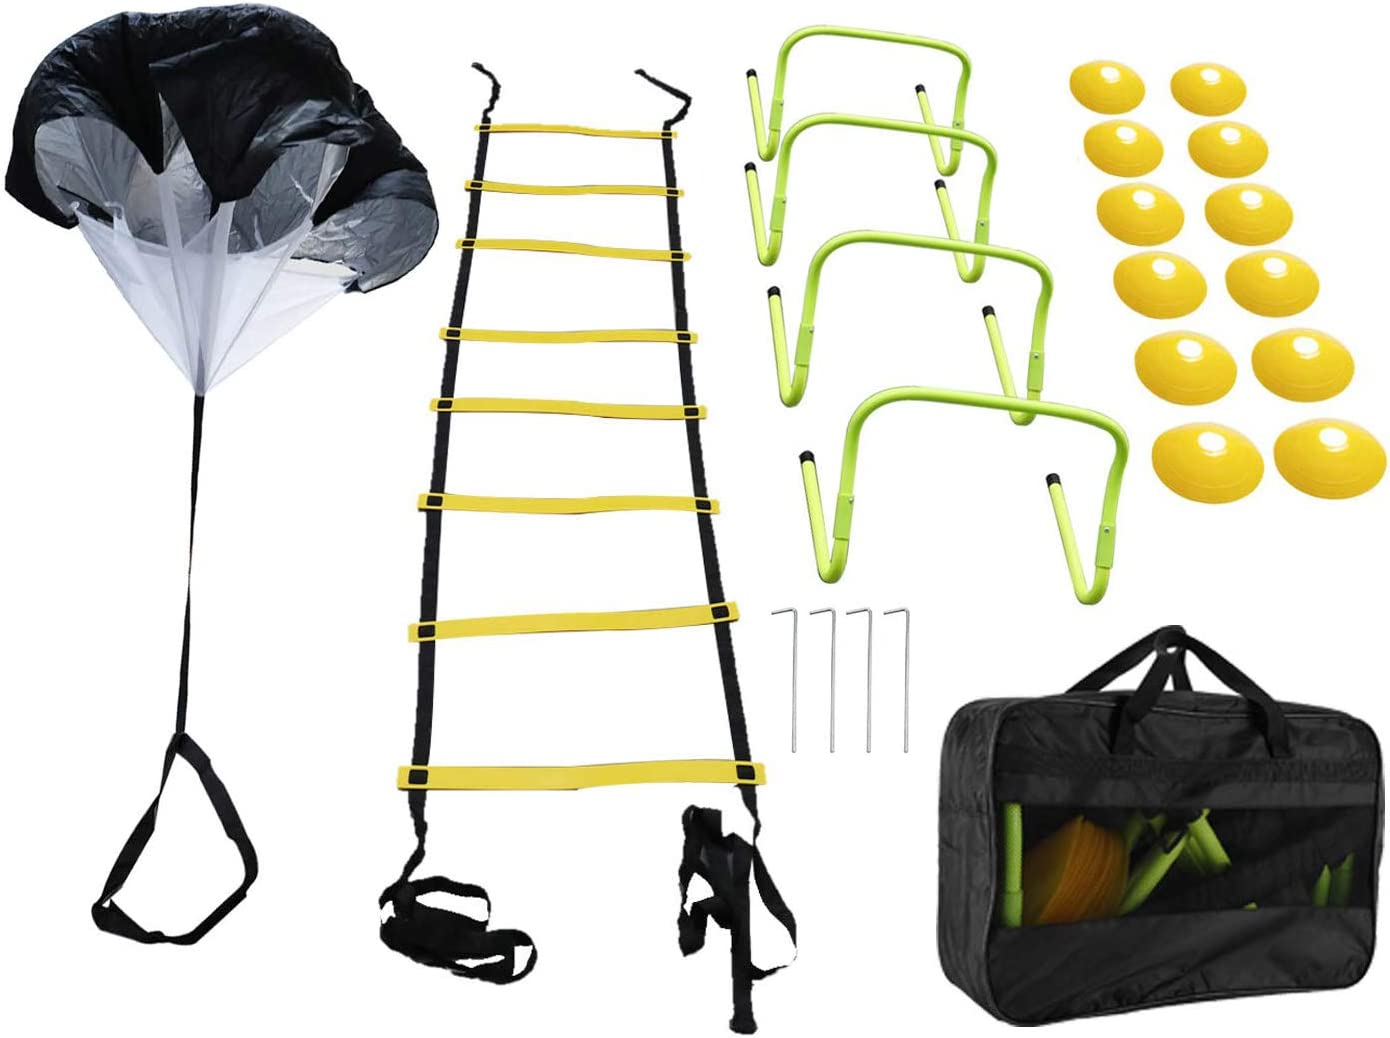 Yaegoo Speed Agility Training Set, Include 1 Resistance Parachute, 1 Agility Ladder with 4 Steel Stakes, 4 Adjustable Hurdles, 12 Disc Cones and a Storage Bag : Sports & Outdoors